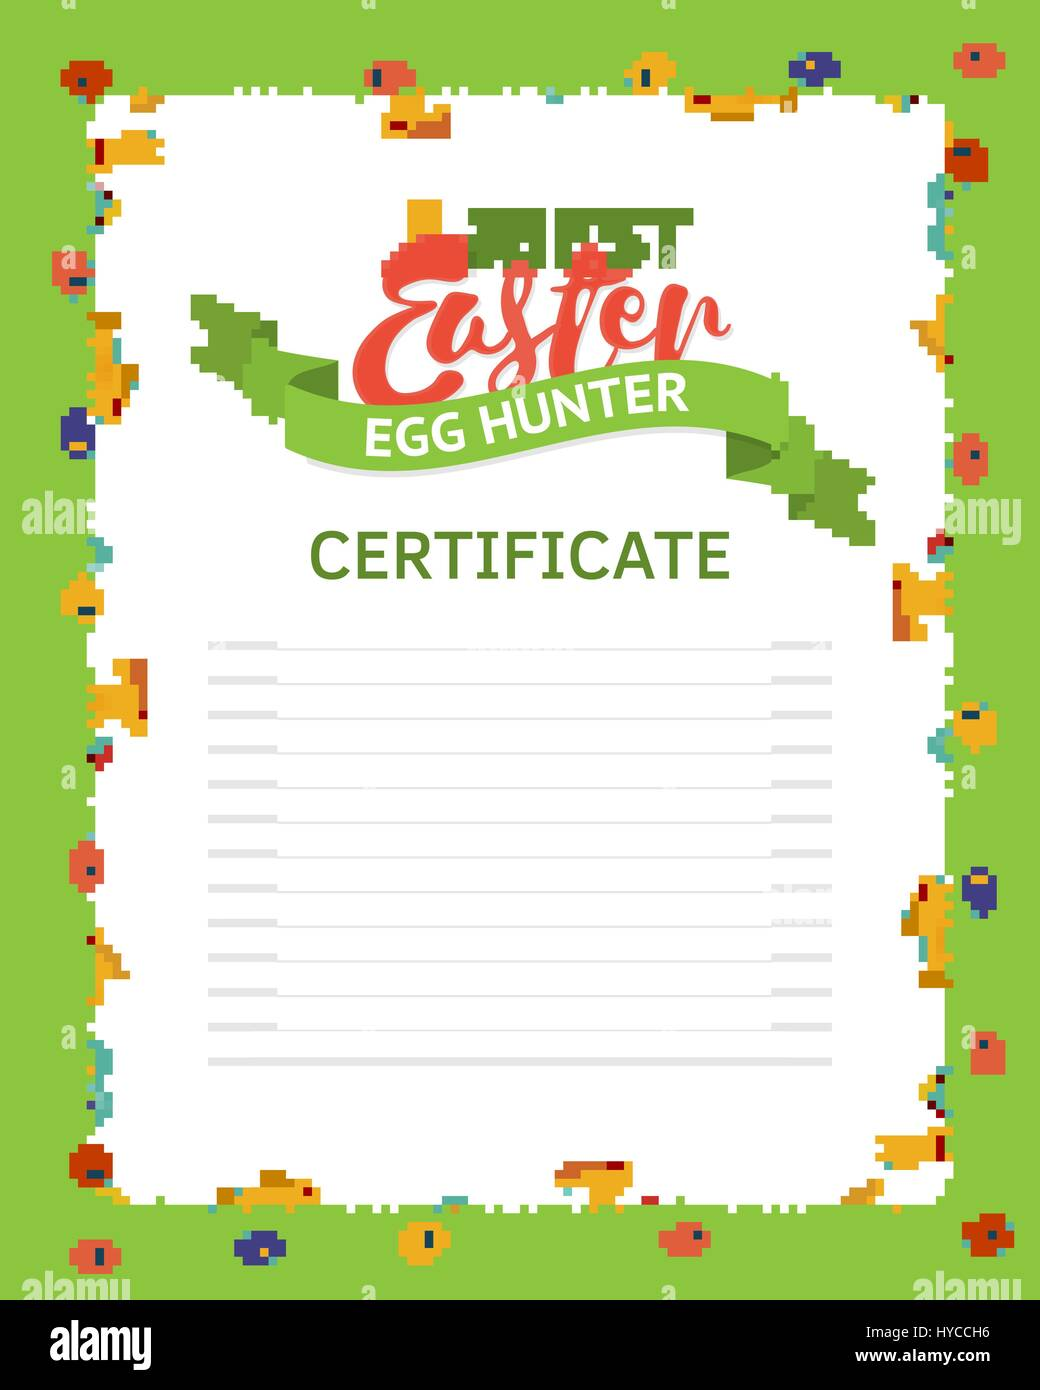 The best easter egg hunter certificate template a frame made of the best easter egg hunter certificate template a frame made of rabbits eggs and flowers in the grass frame for the award of a certificate yadclub Images